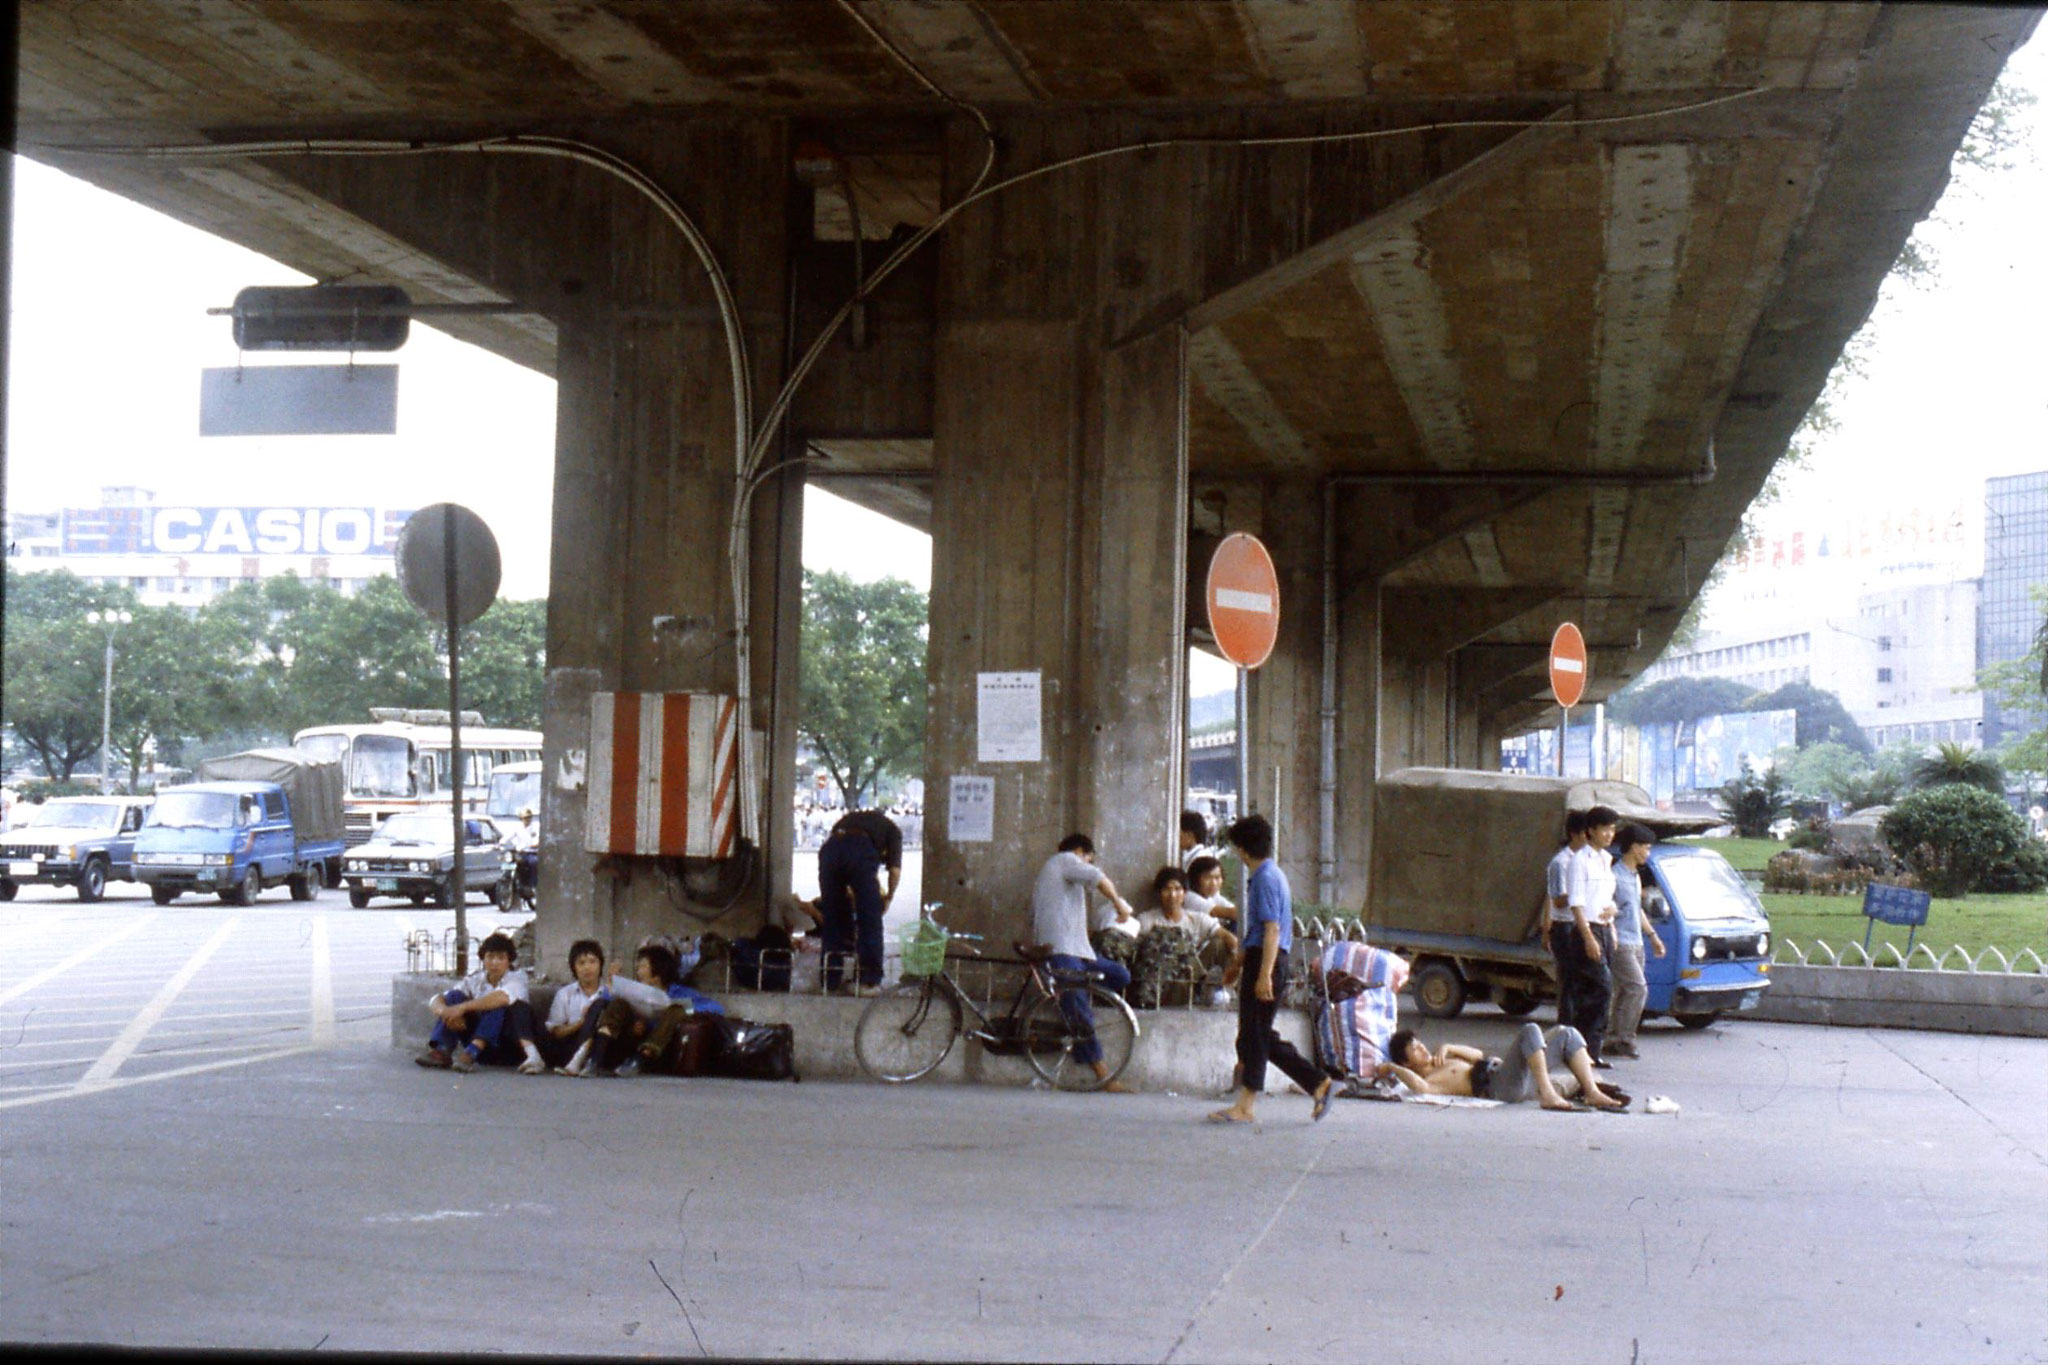 19/5/1989: 11: in front of station